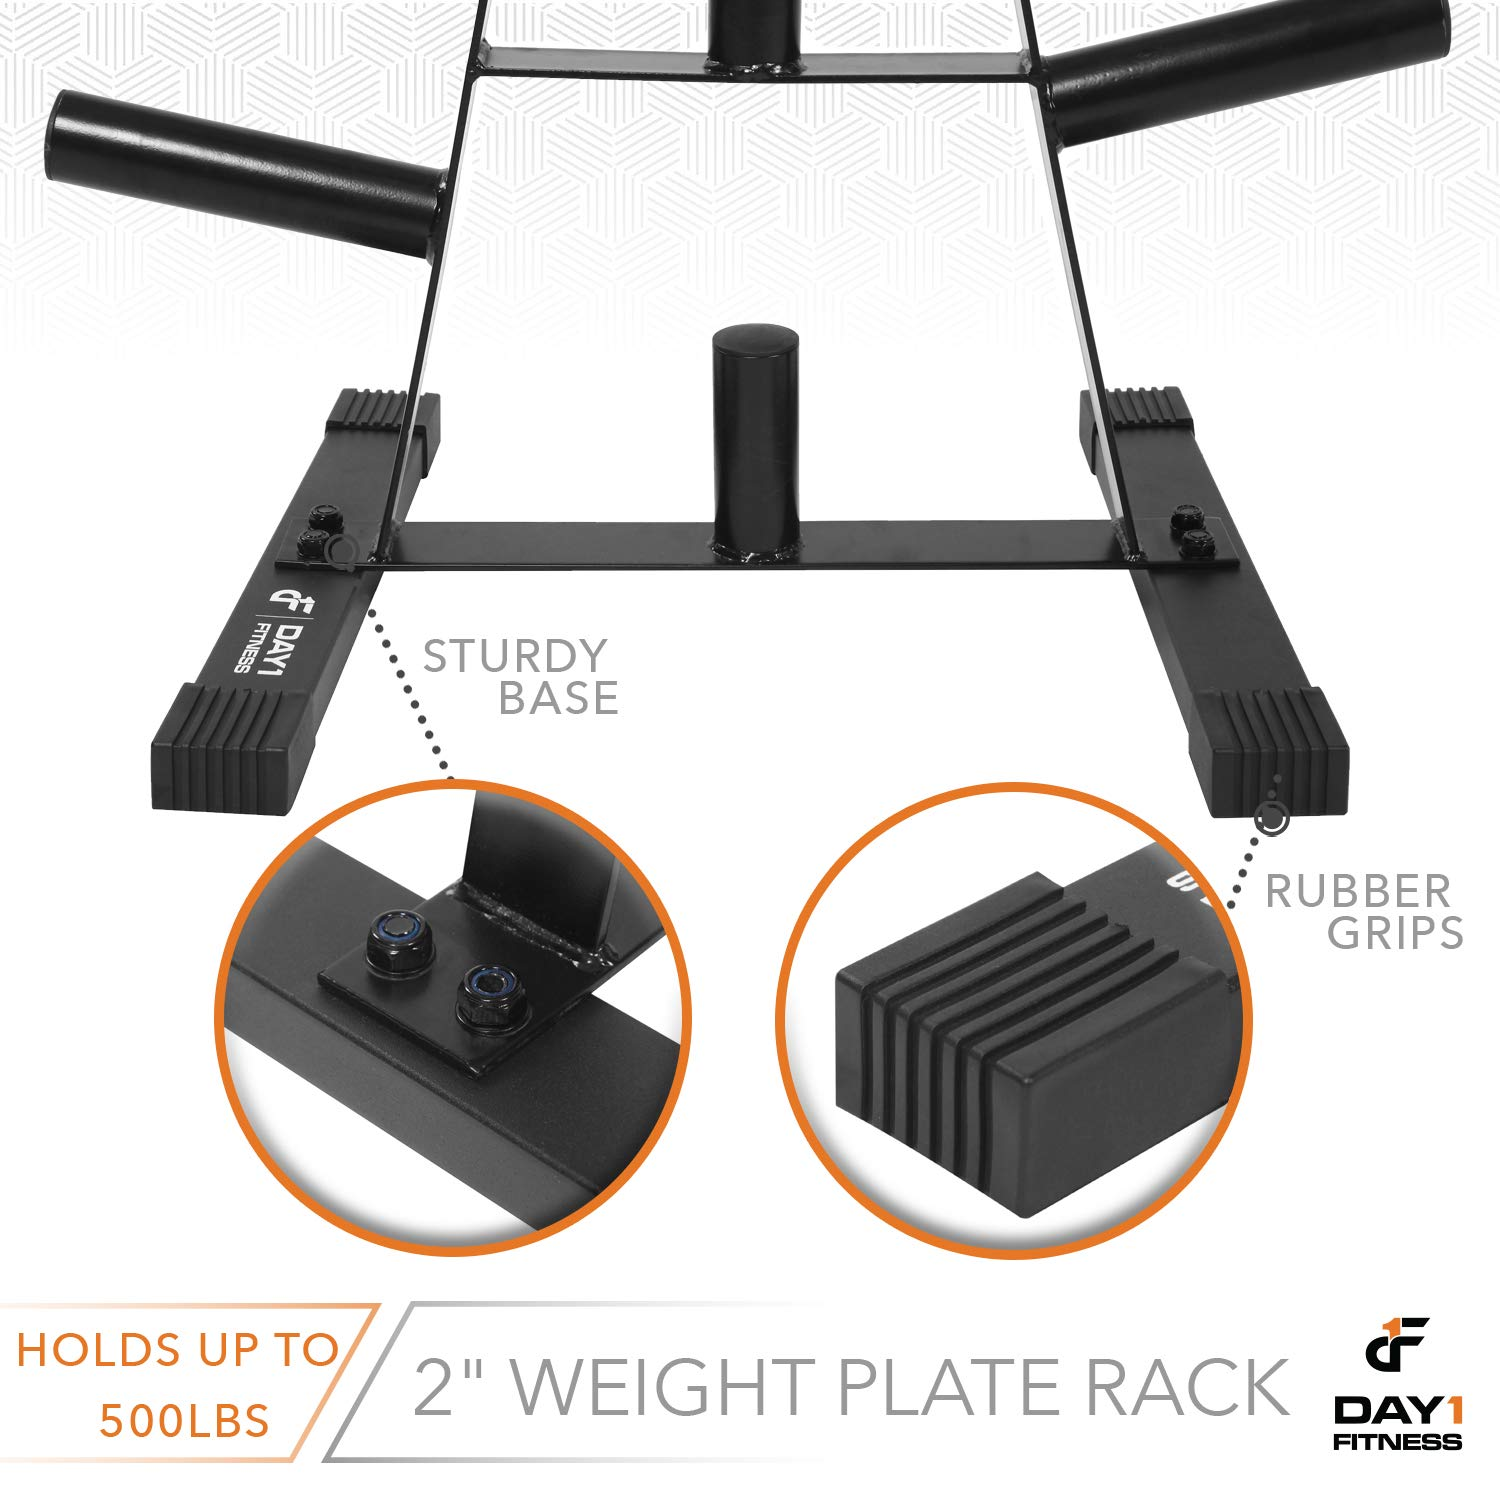 Olympic Weight Plate Rack, Holds up to 500lb of 2'' Weights by D1F - Black Weight Holder Tree with 7 Branches for Stacking and Storing High Capacity Weights- Heavy-Duty, Durable Triangle Plate Racks by Day 1 Fitness (Image #4)